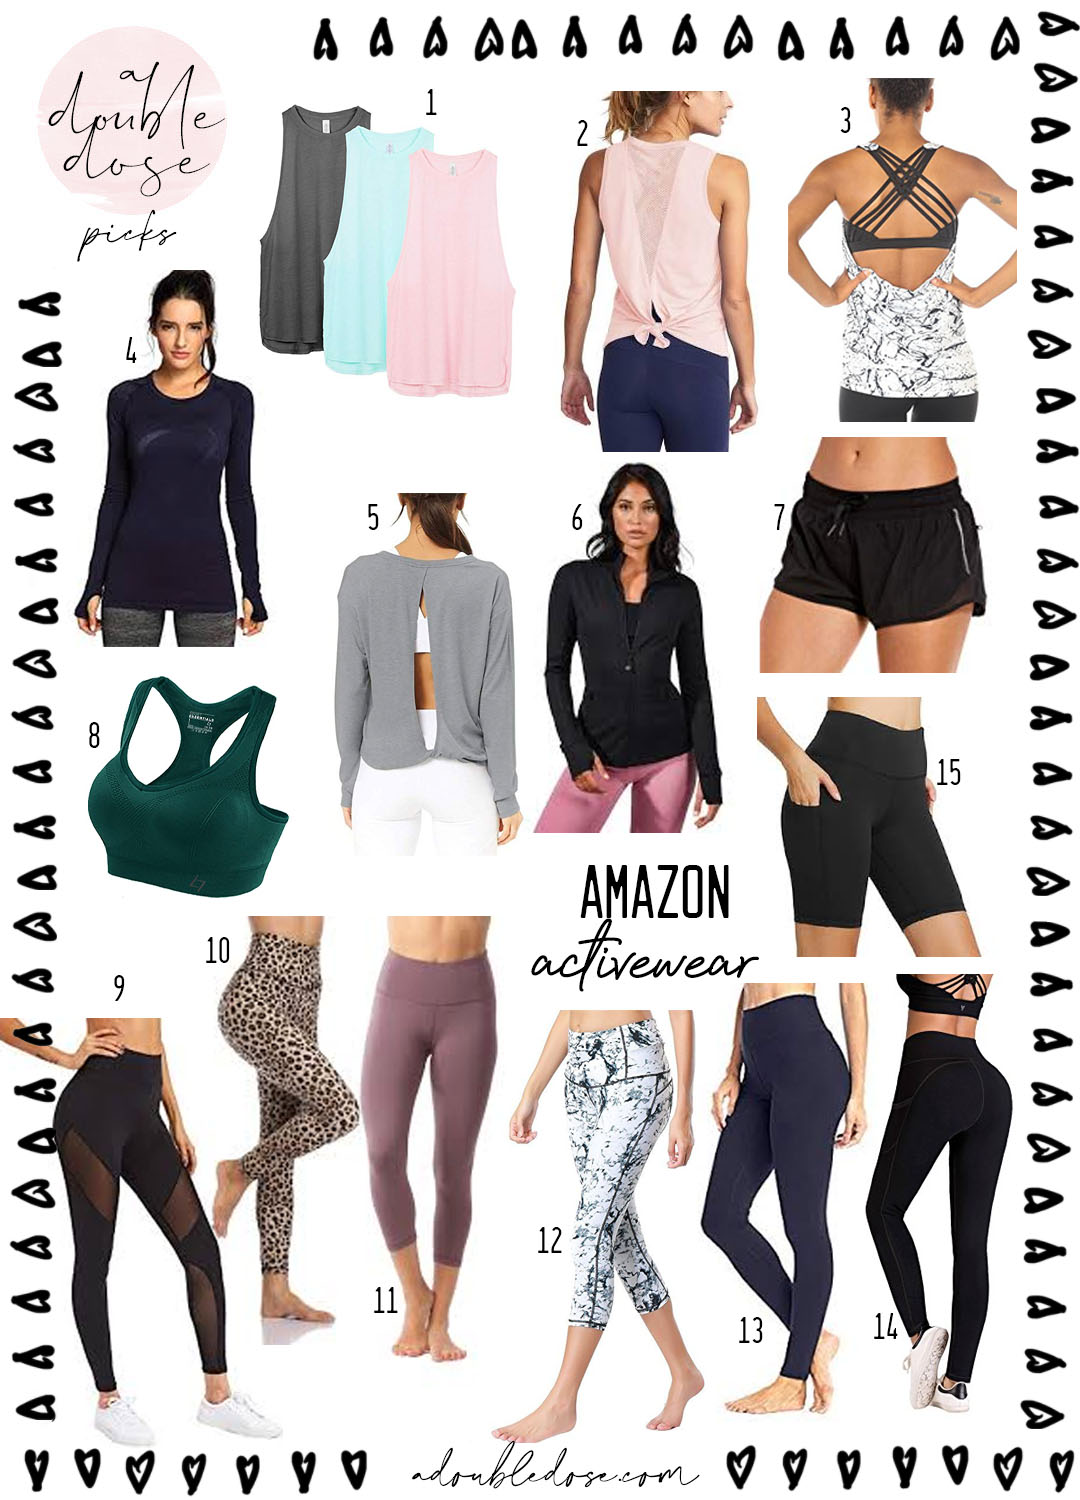 lifestyle and fashion blogger alexis belbel sharing amazon activewear for workouts and athleisure : tanks, leggings, shorts, bras | adoubledose.com